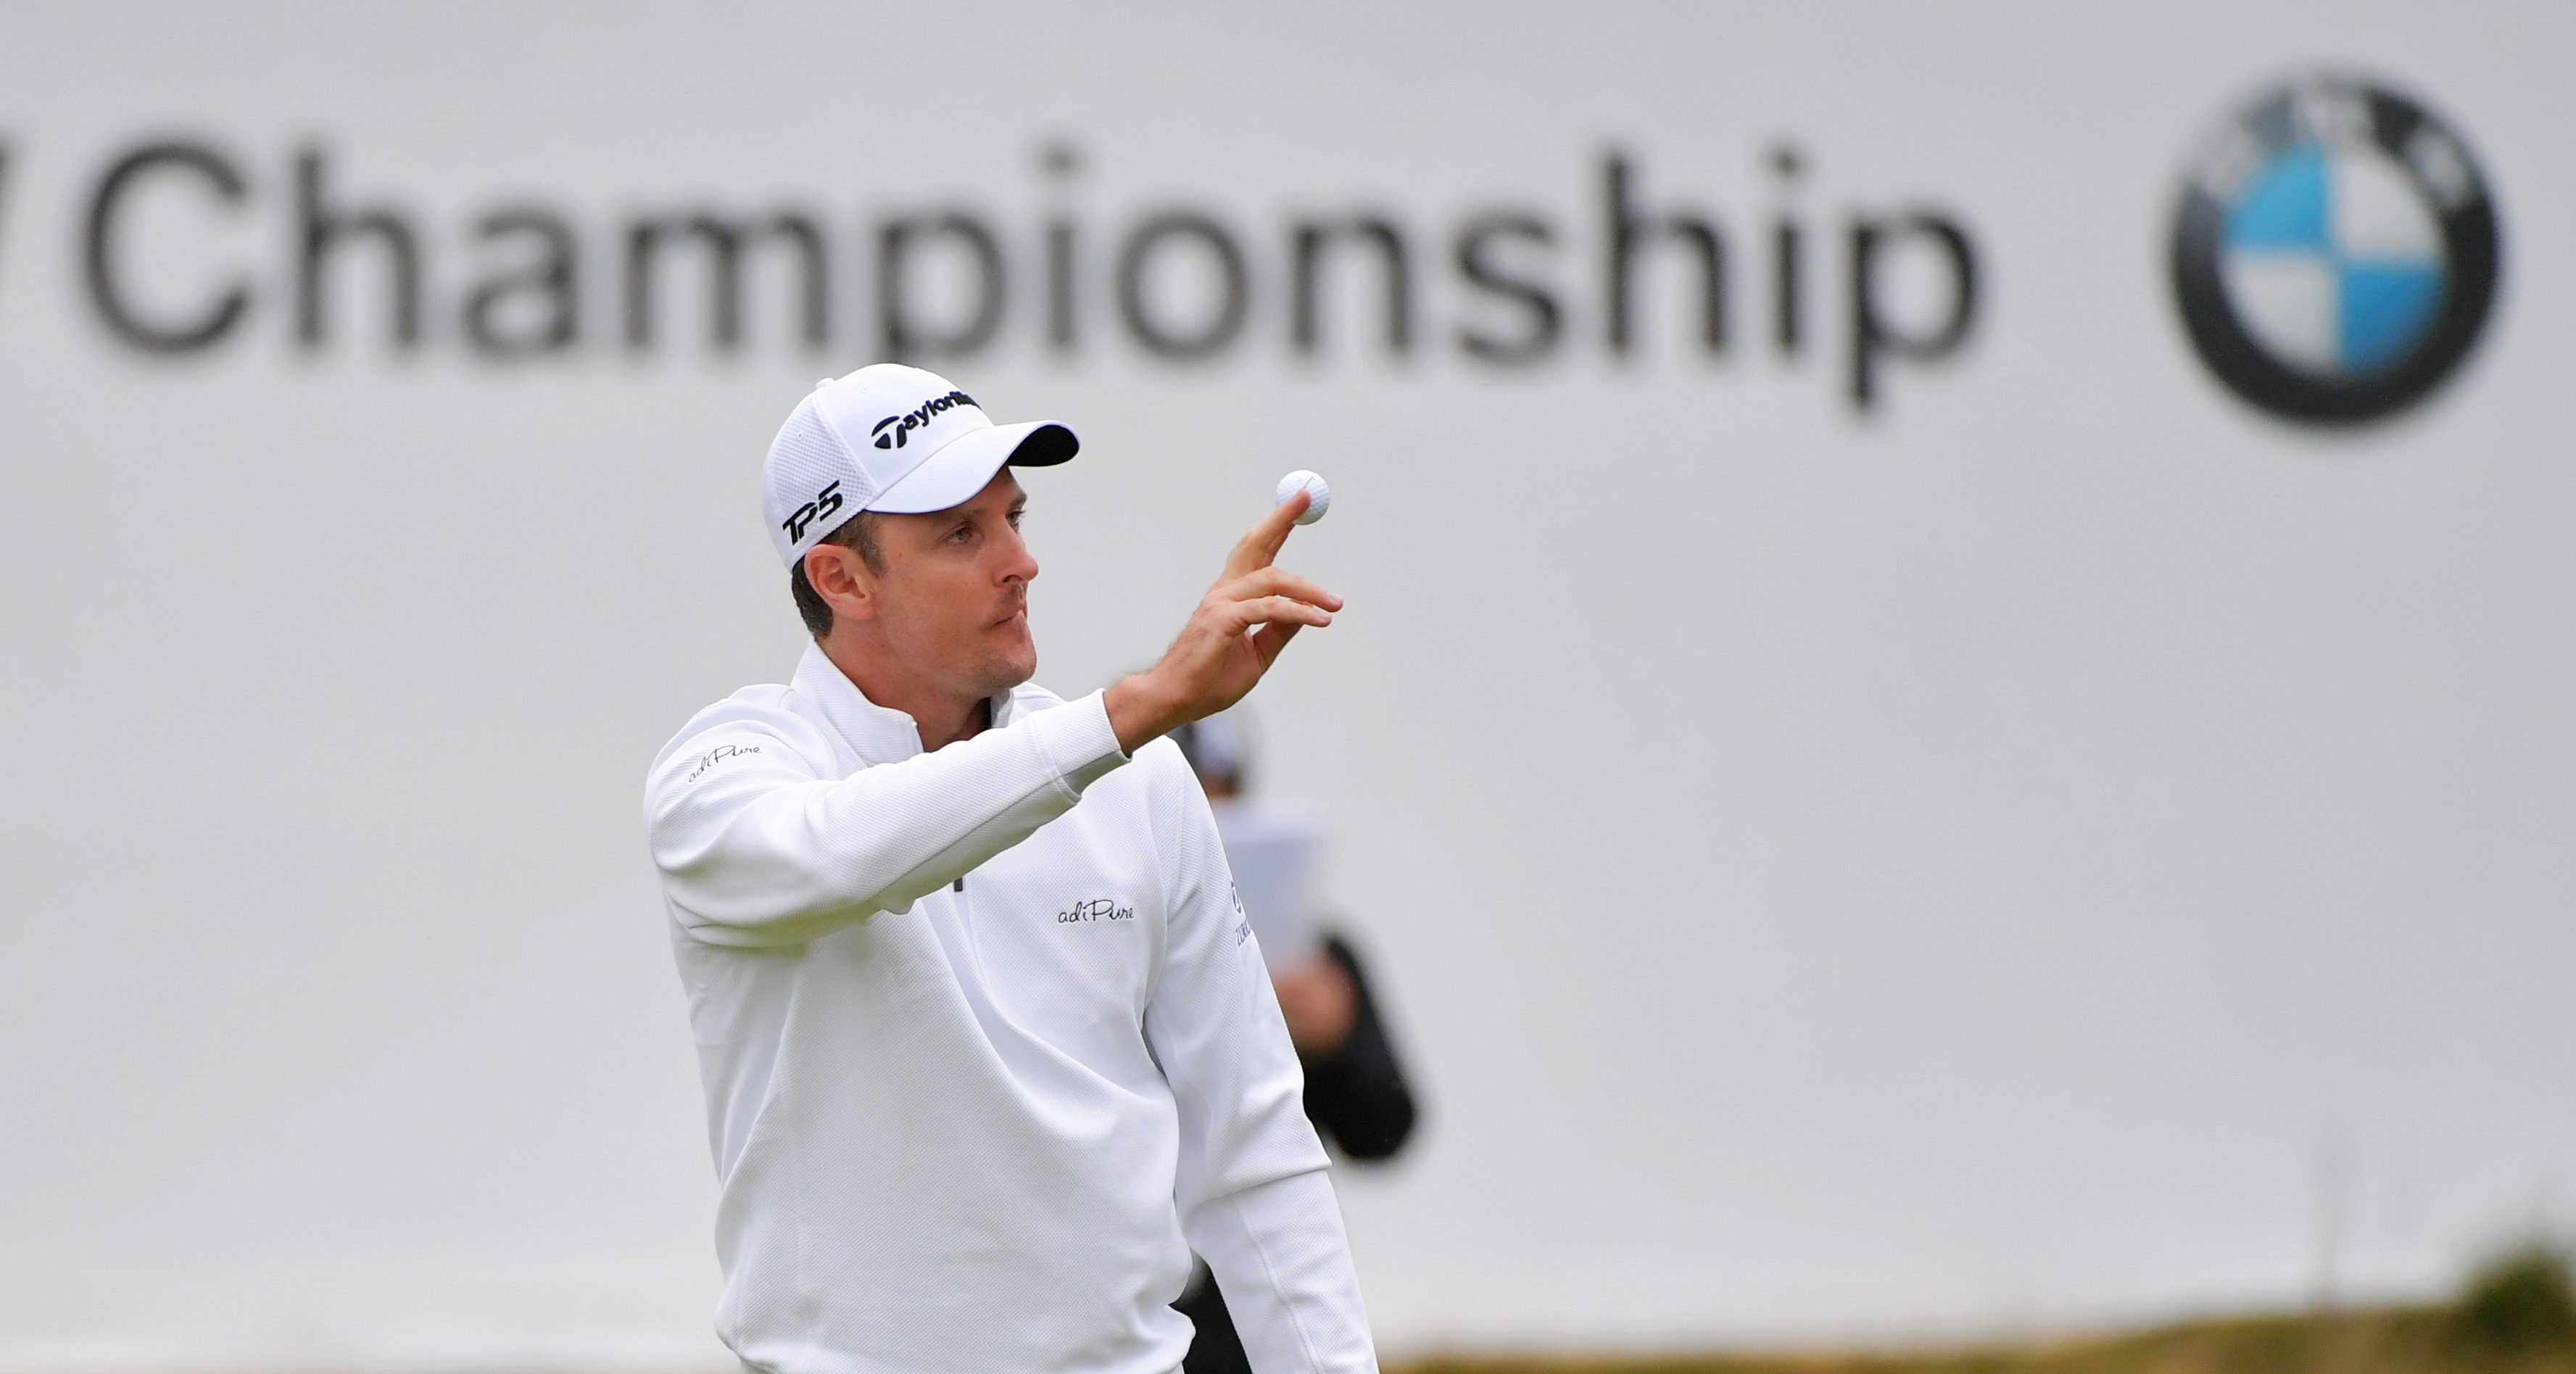 NEWTOWN SQUARE, PA - SEPTEMBER 10: Justin Rose of England waves his ball to the crowd on the 17th green during the weather delayed final round of the BMW Championship at Aronimink Golf Club on September 10, 2018 in Newtown Square, Pennsylvania. (Photo by Drew Hallowell/Getty Images)